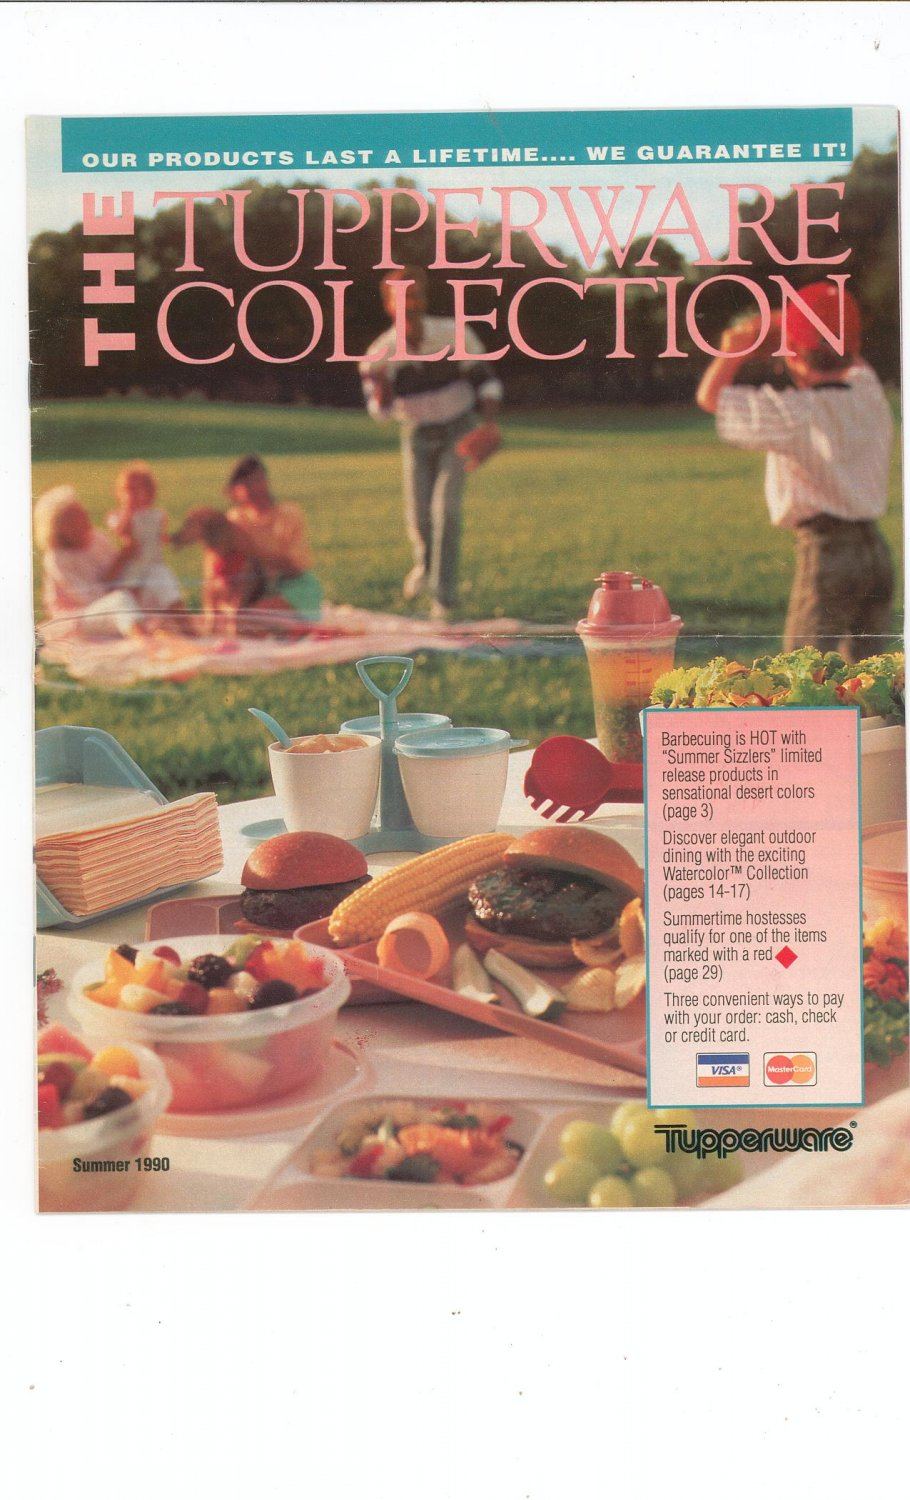 The Tupperware Collection Catalog Summer 1990